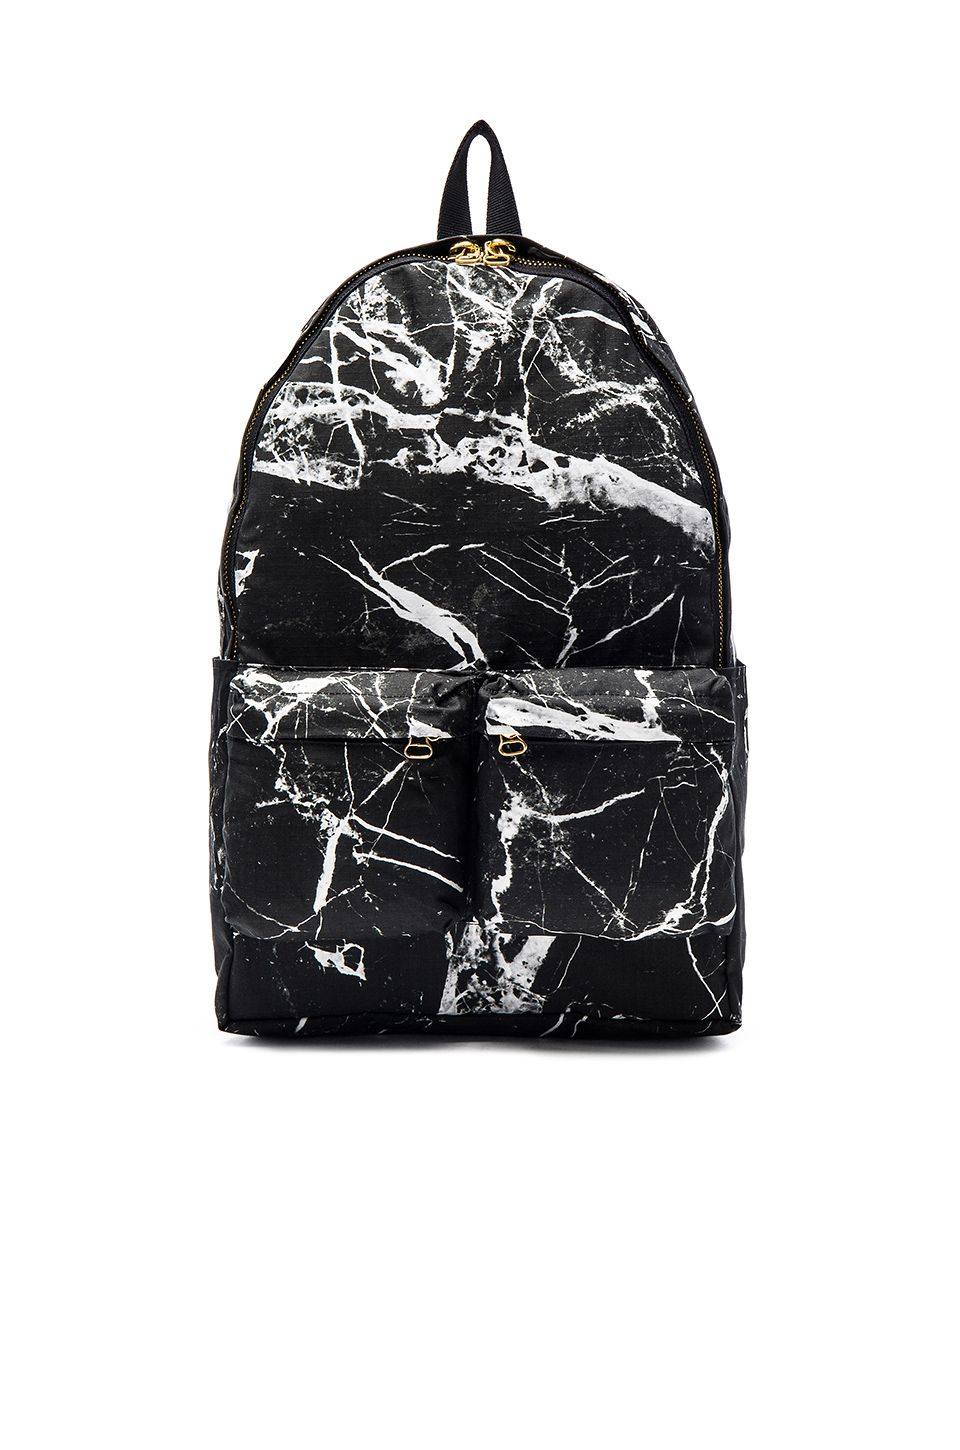 1020bc0ba22 OFF-WHITE Backpack.  off-white  bags  lining  backpacks  cotton ...